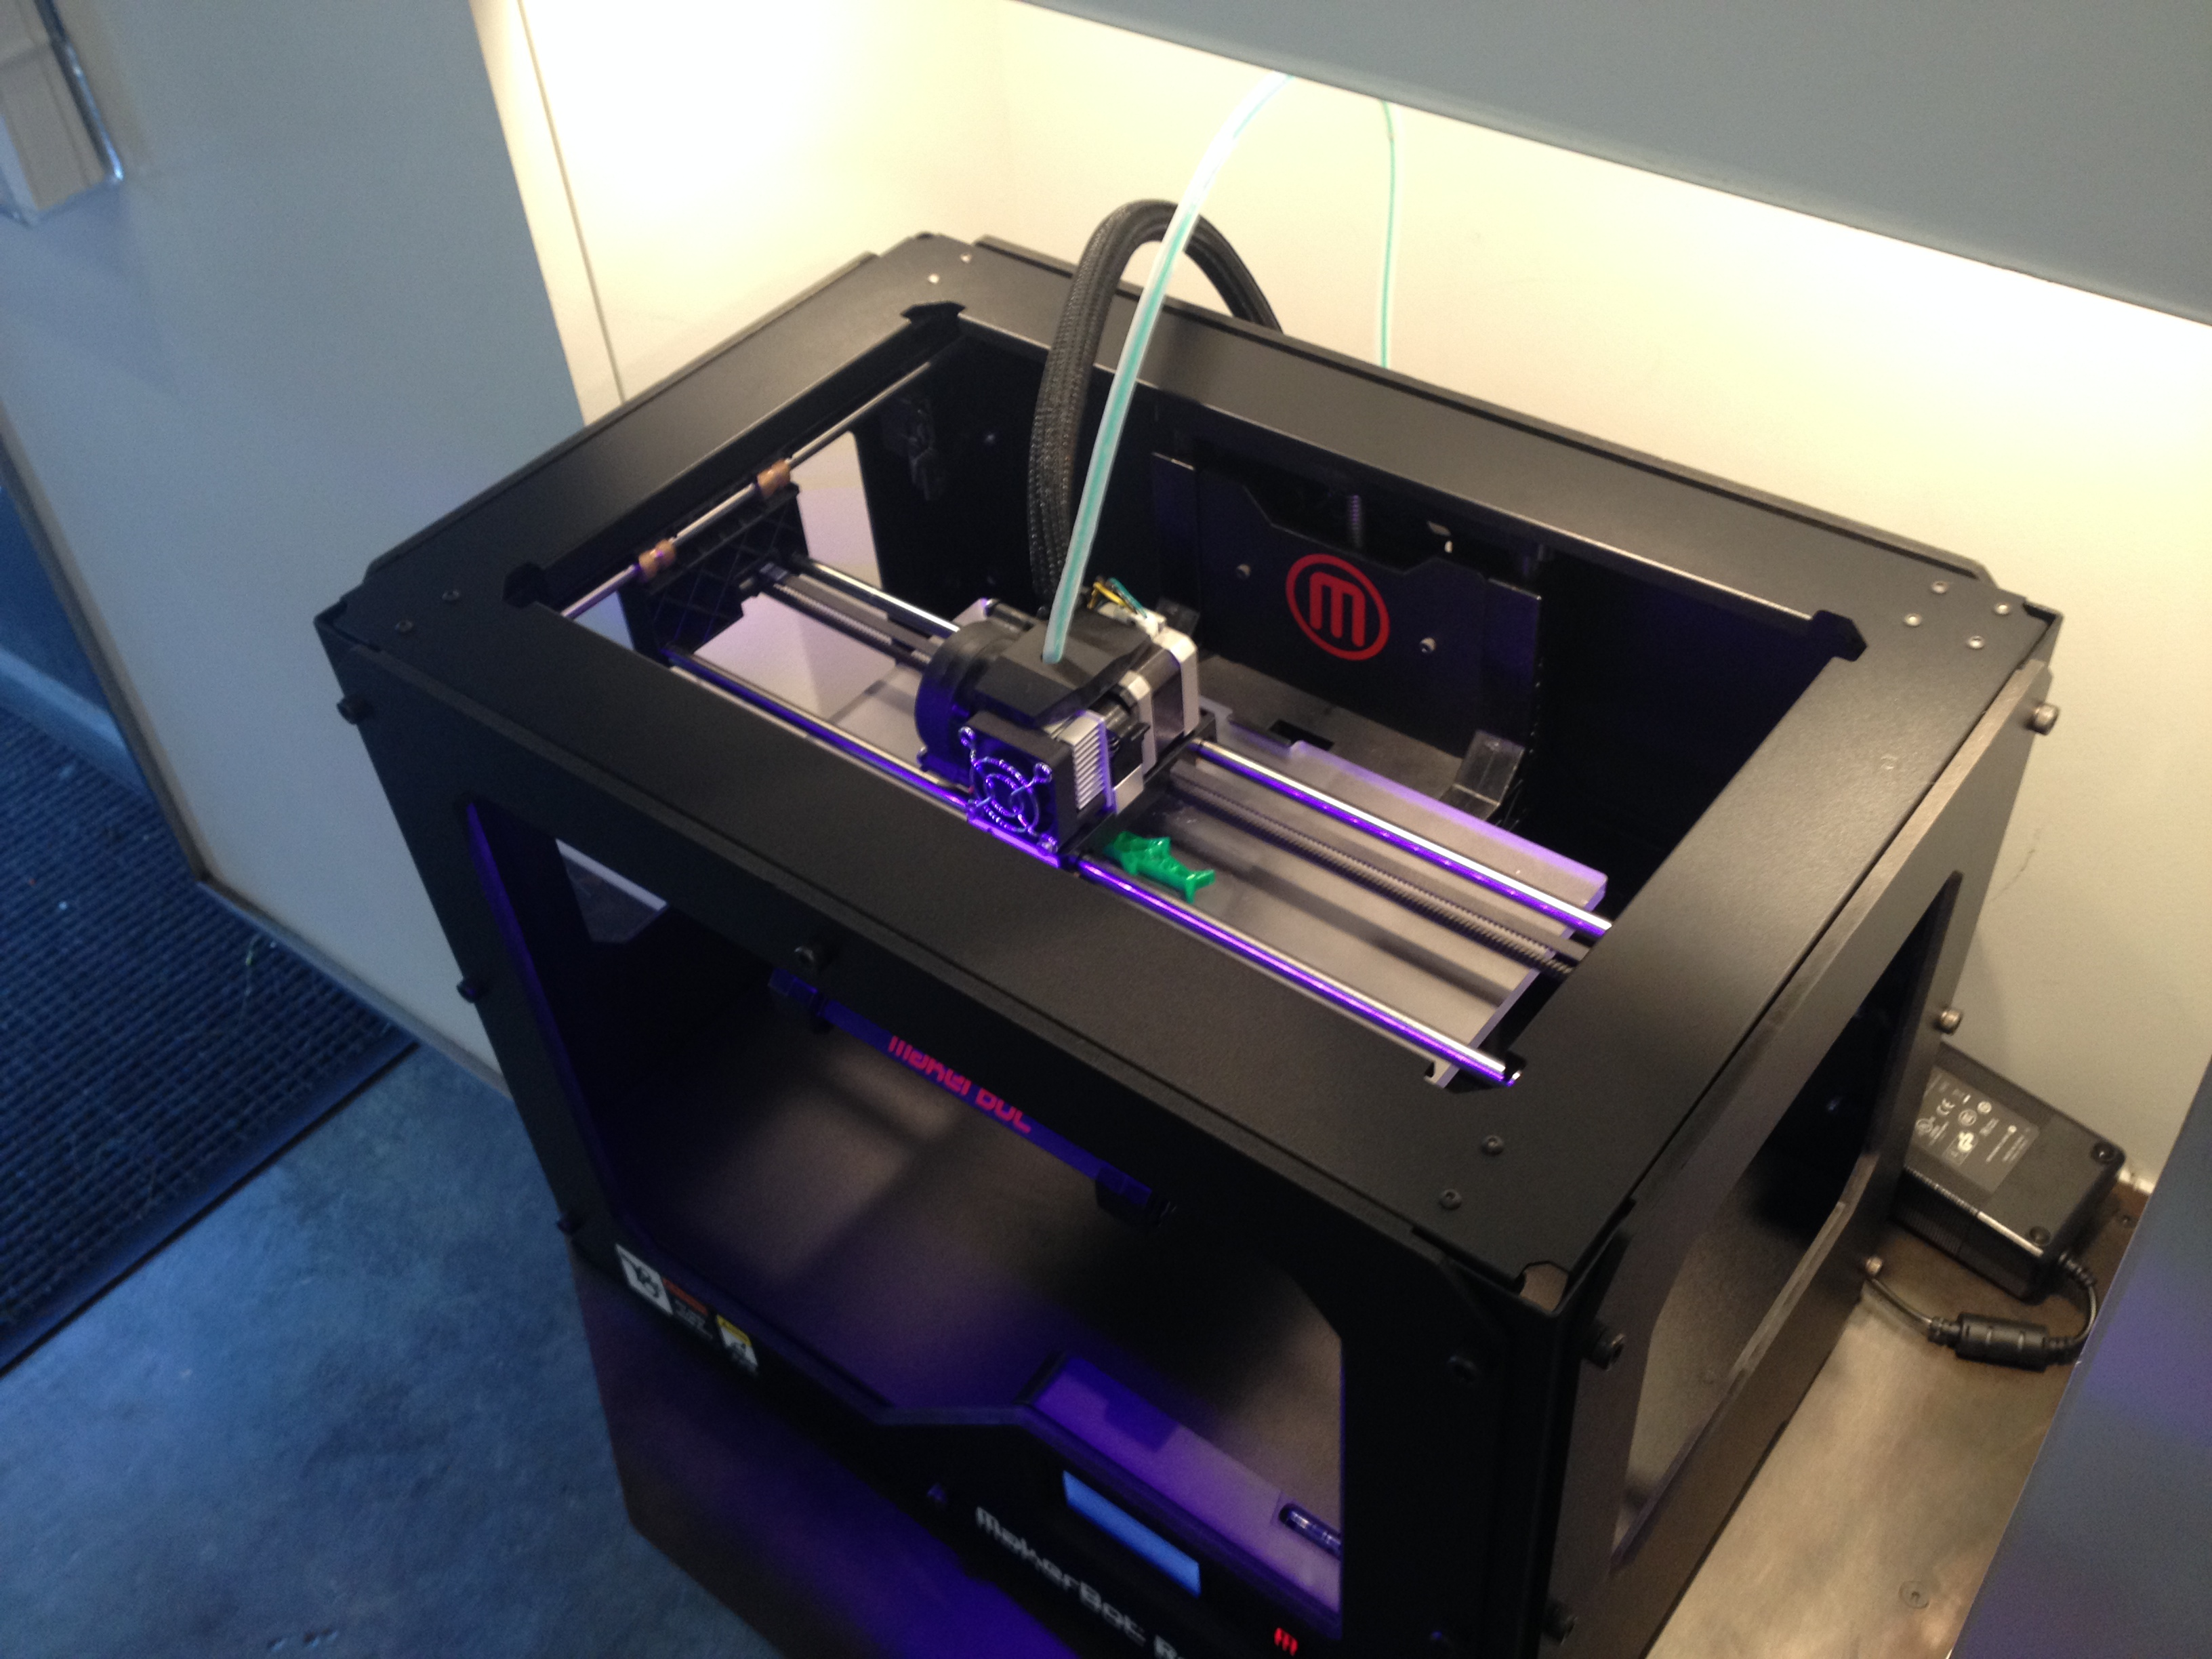 A Makerbot Replicator 2 prints a plastic shark at the Makerbot Store in Soho, New York City. (Photo by Emily Field)